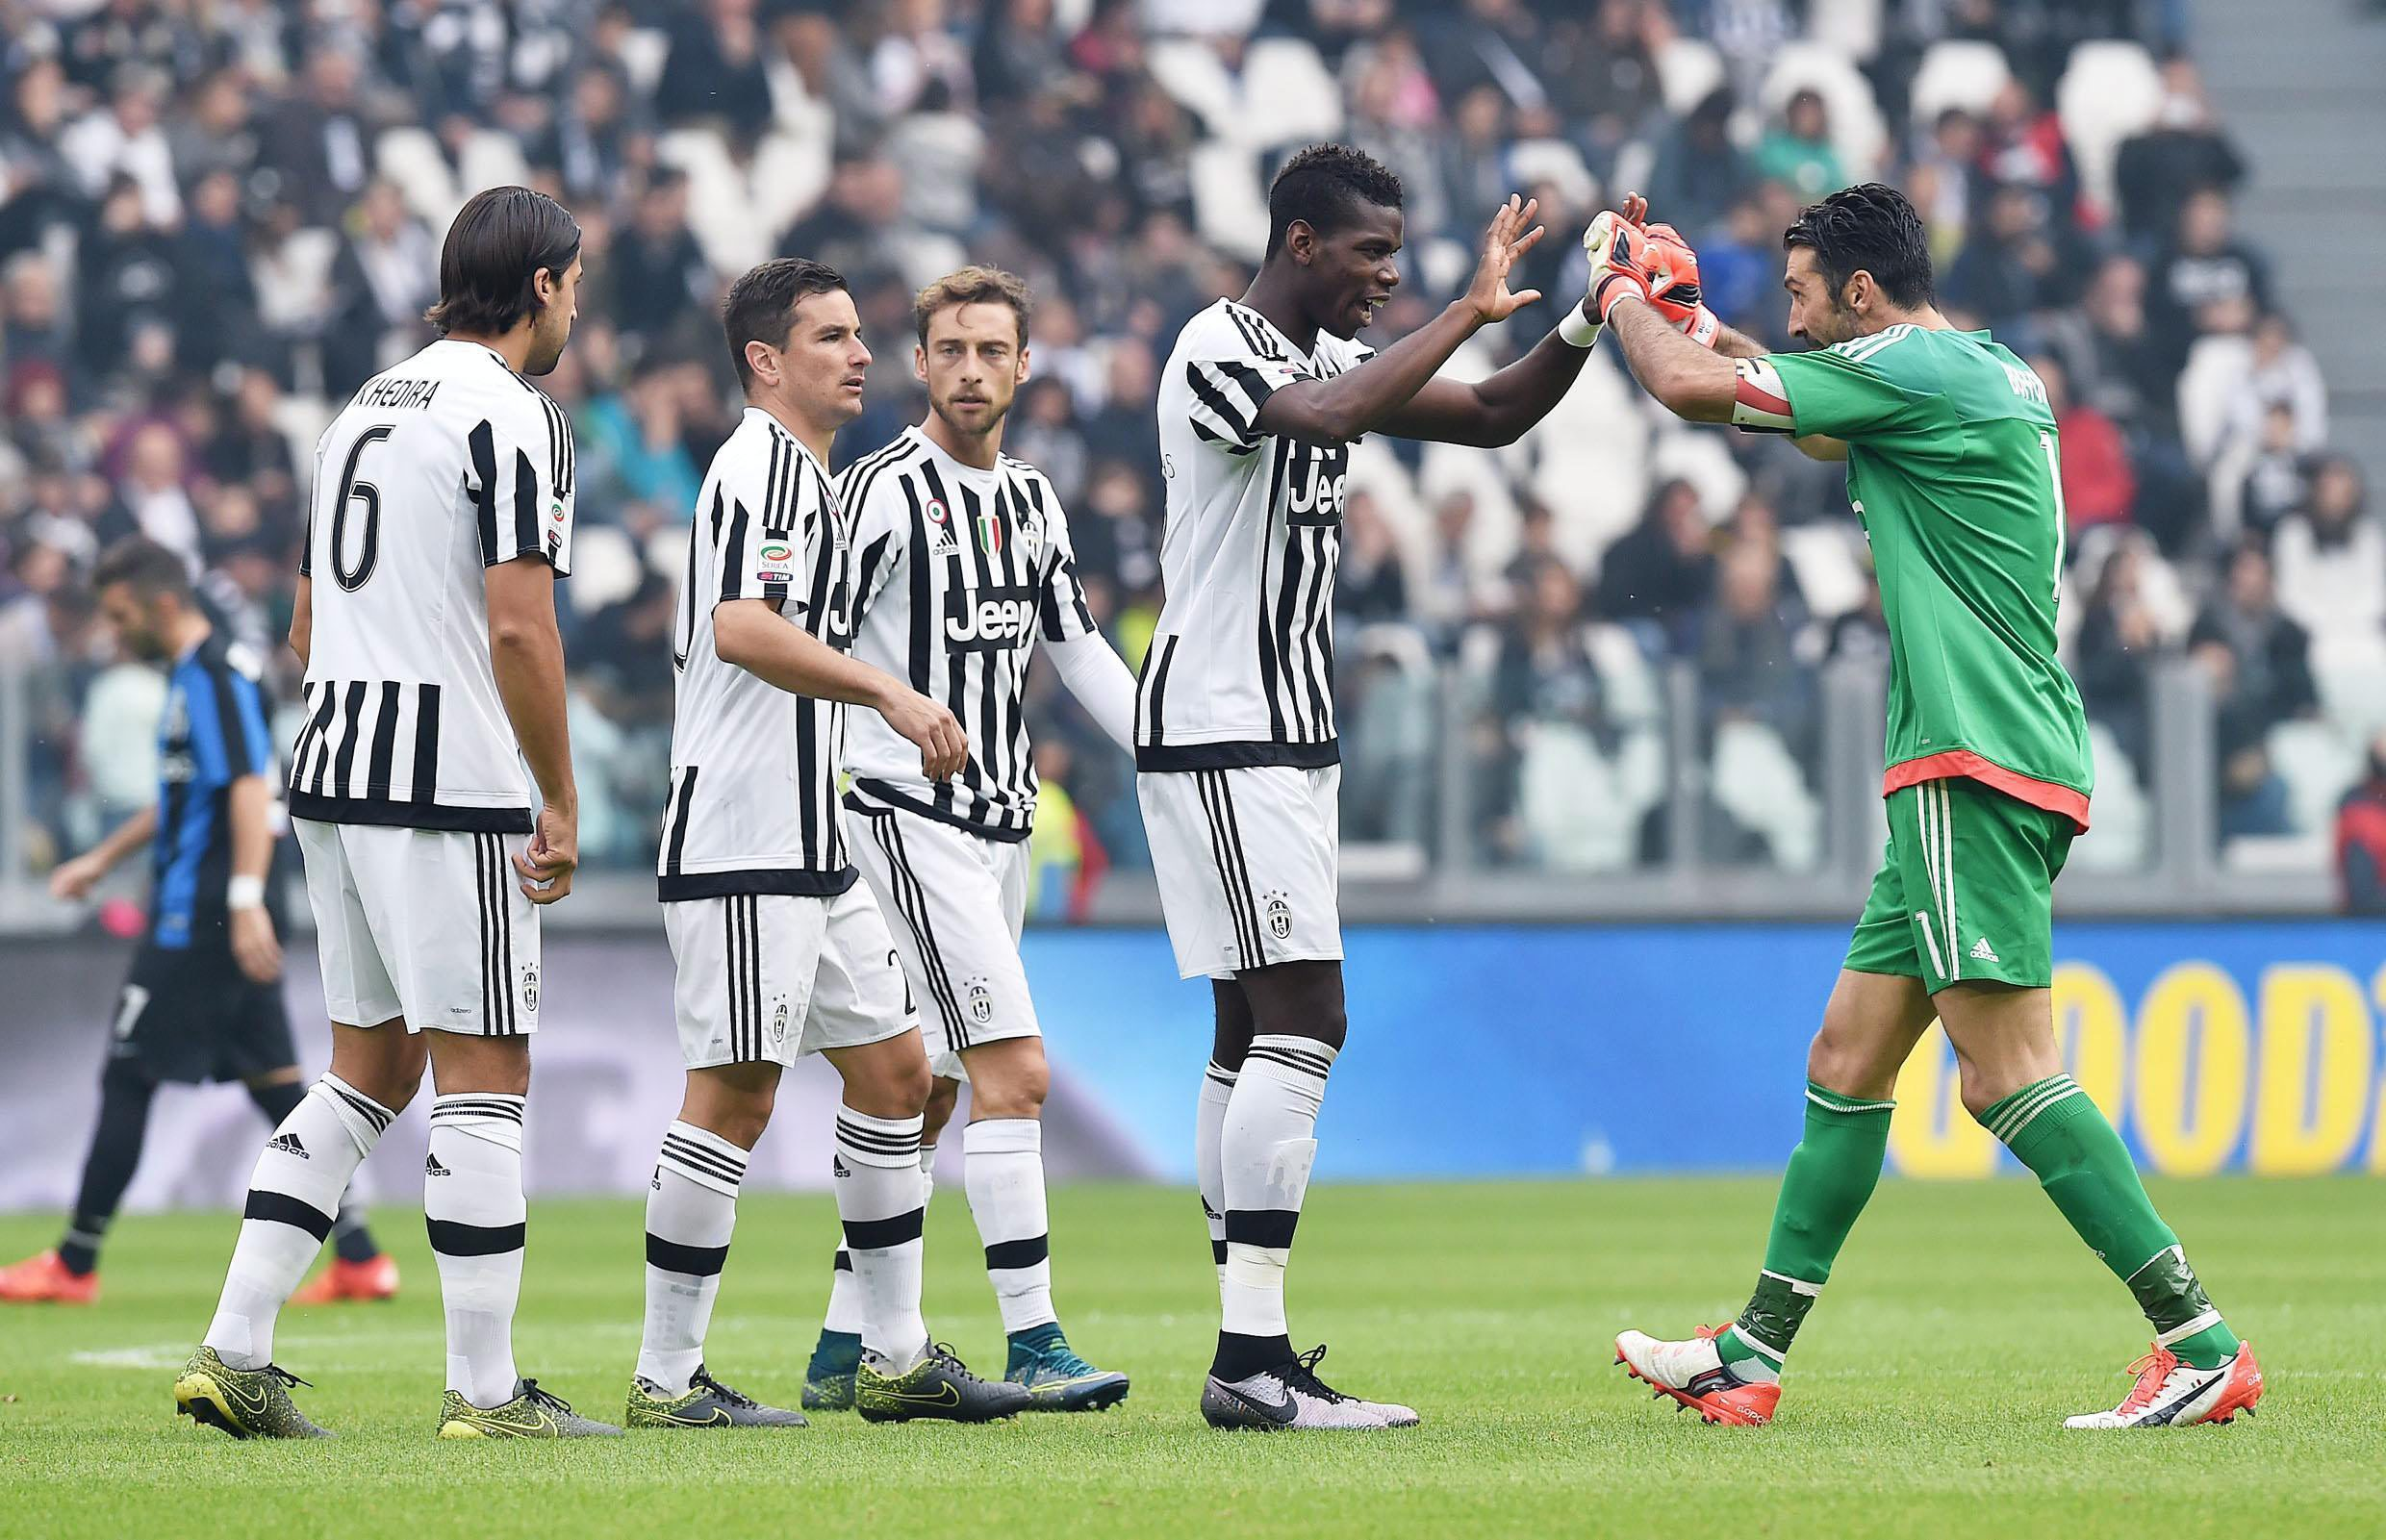 French midfielder Paul Pogba of Juventus gestures with teammate Gigi Buffon (R) during Italian Serie A soccer match between Juventus and Atalanta at the Juventus stadium in Turin, 25 October 2015. EPA/DI MARCO